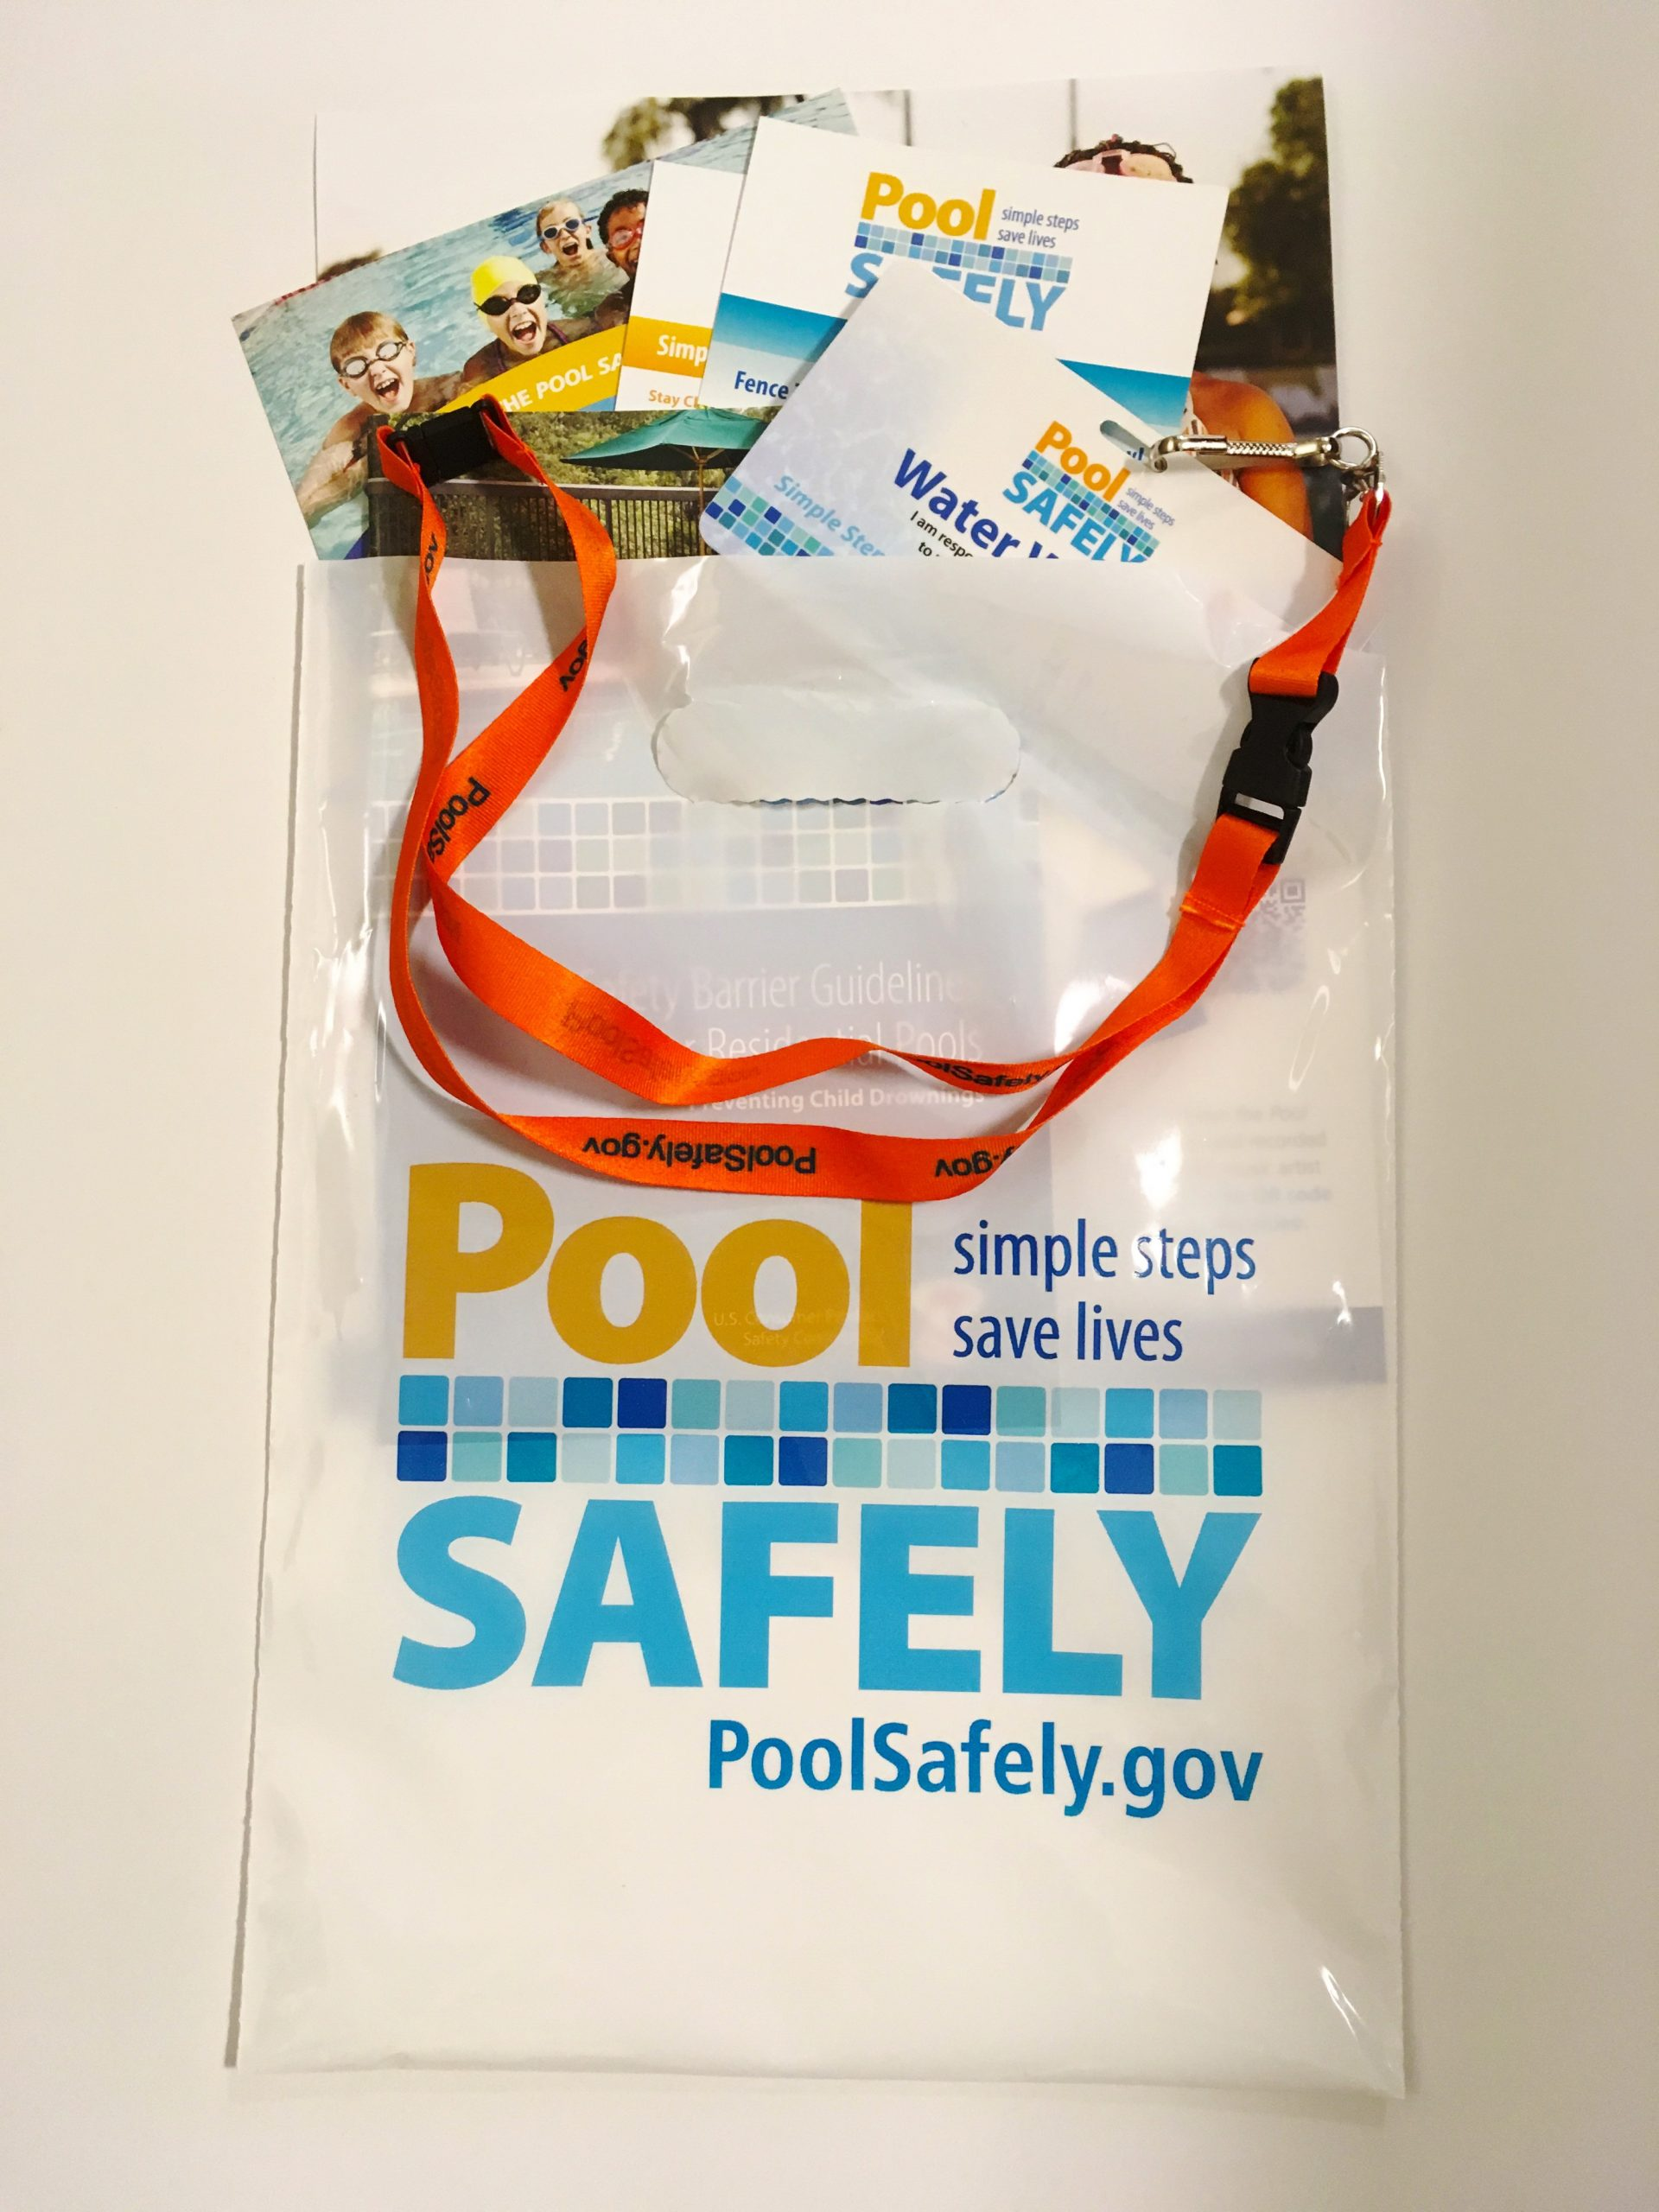 pool safely materials packaged specifically for homeowners.